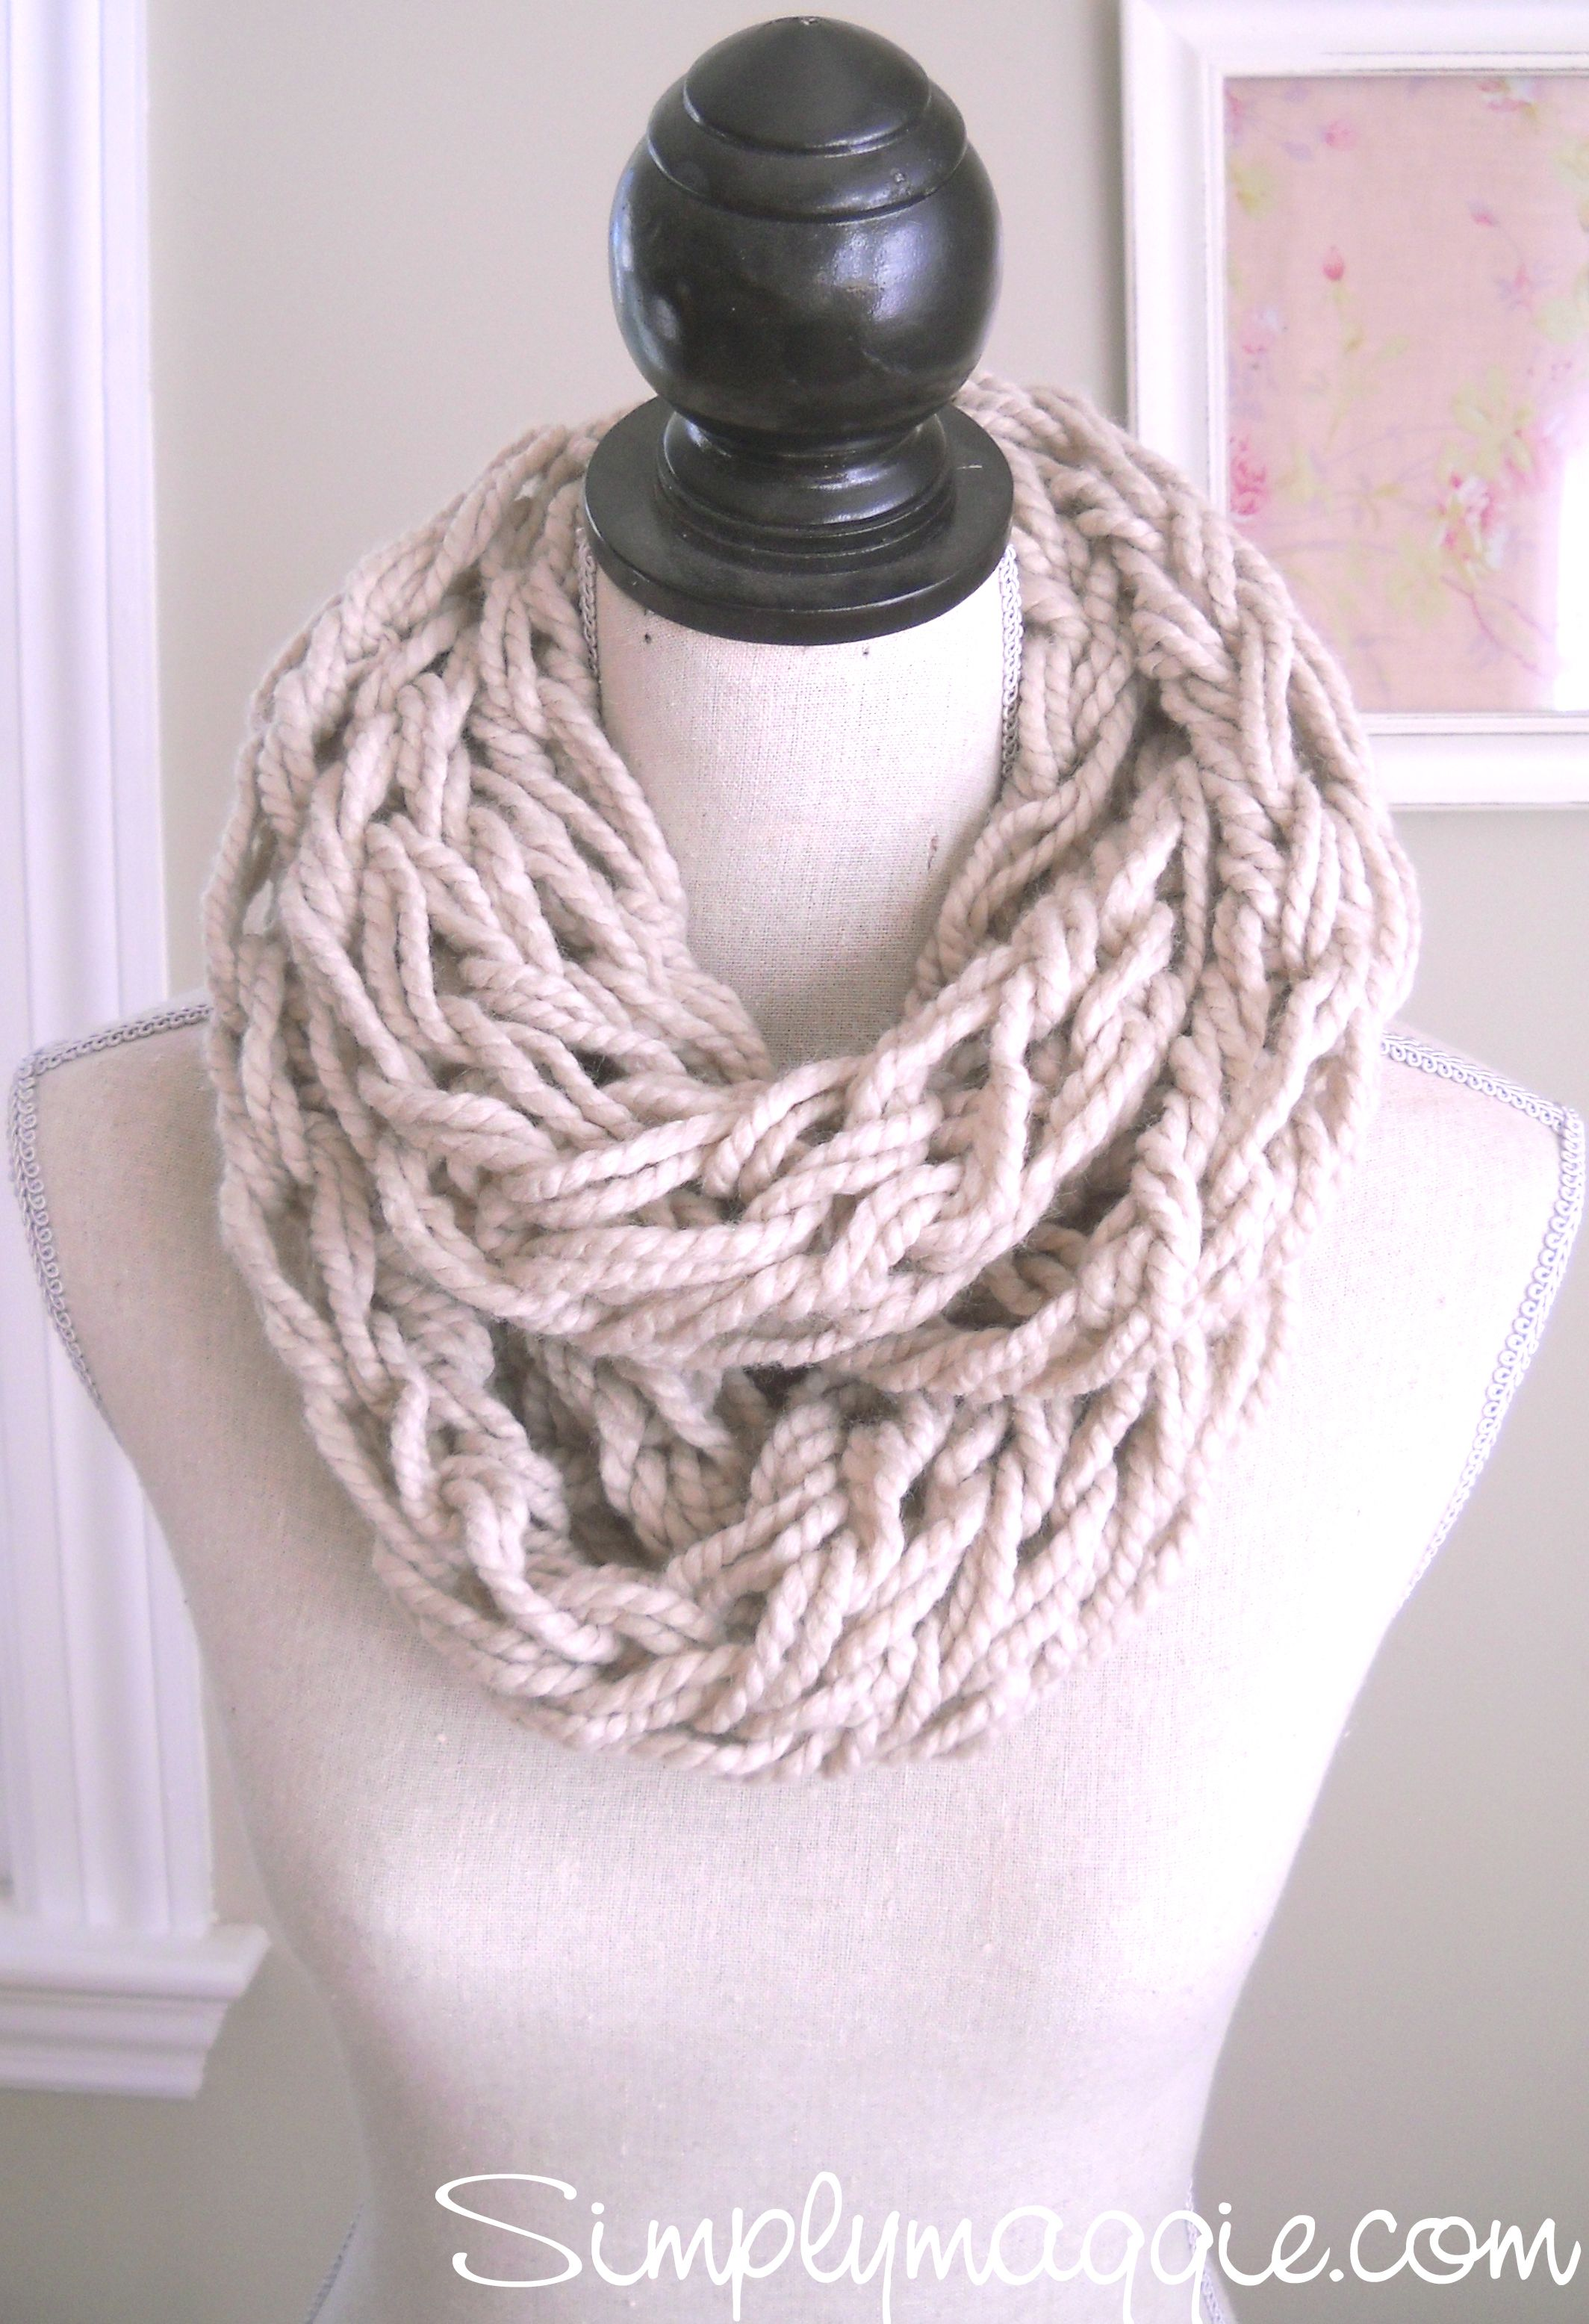 Knitting A Scarf Tutorial : Arm knitting tutorial how to simplymaggie elva